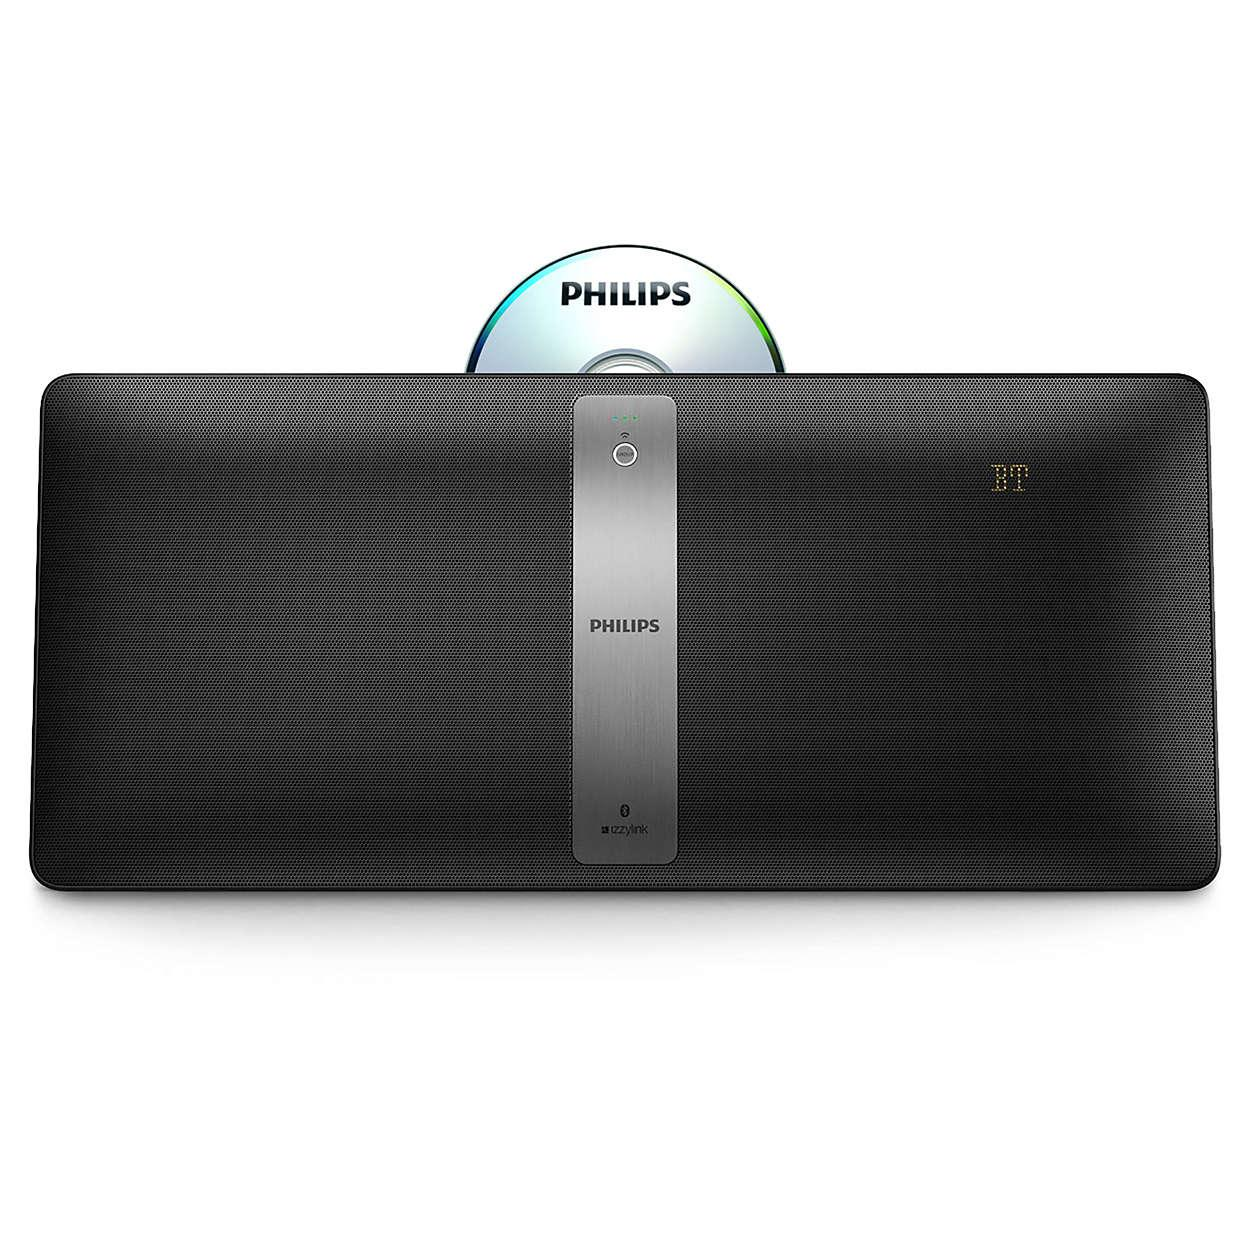 Enceinte CD + MP3 + Bluetooth multiroom Philips BM50B/10